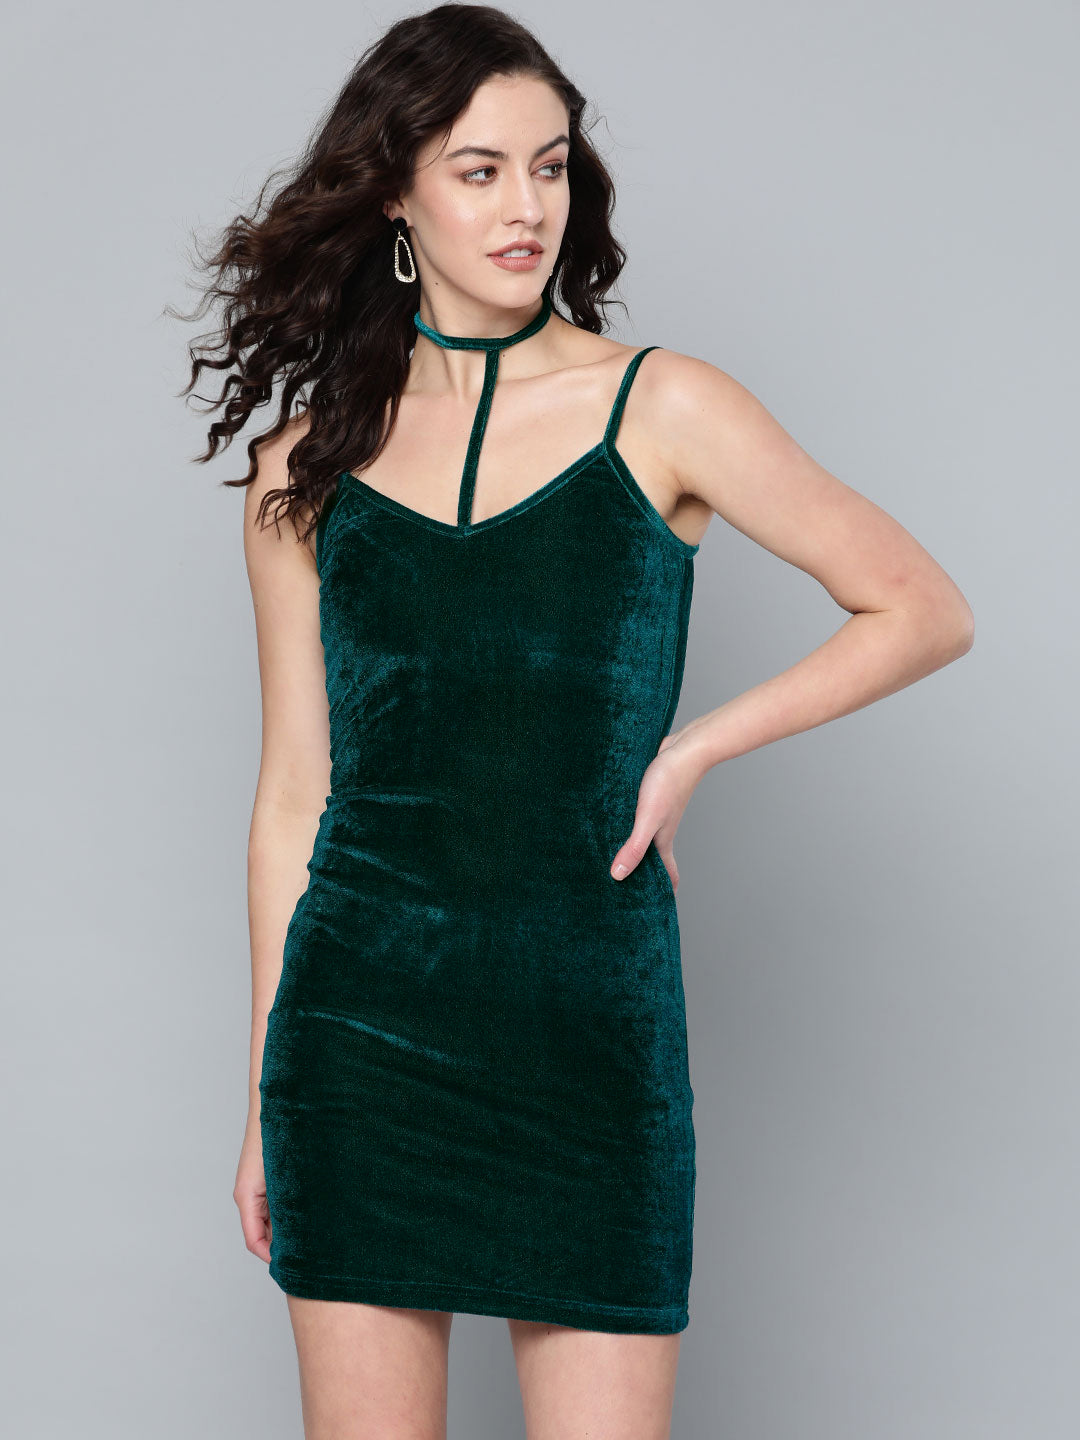 Velvet Turquoise Dress